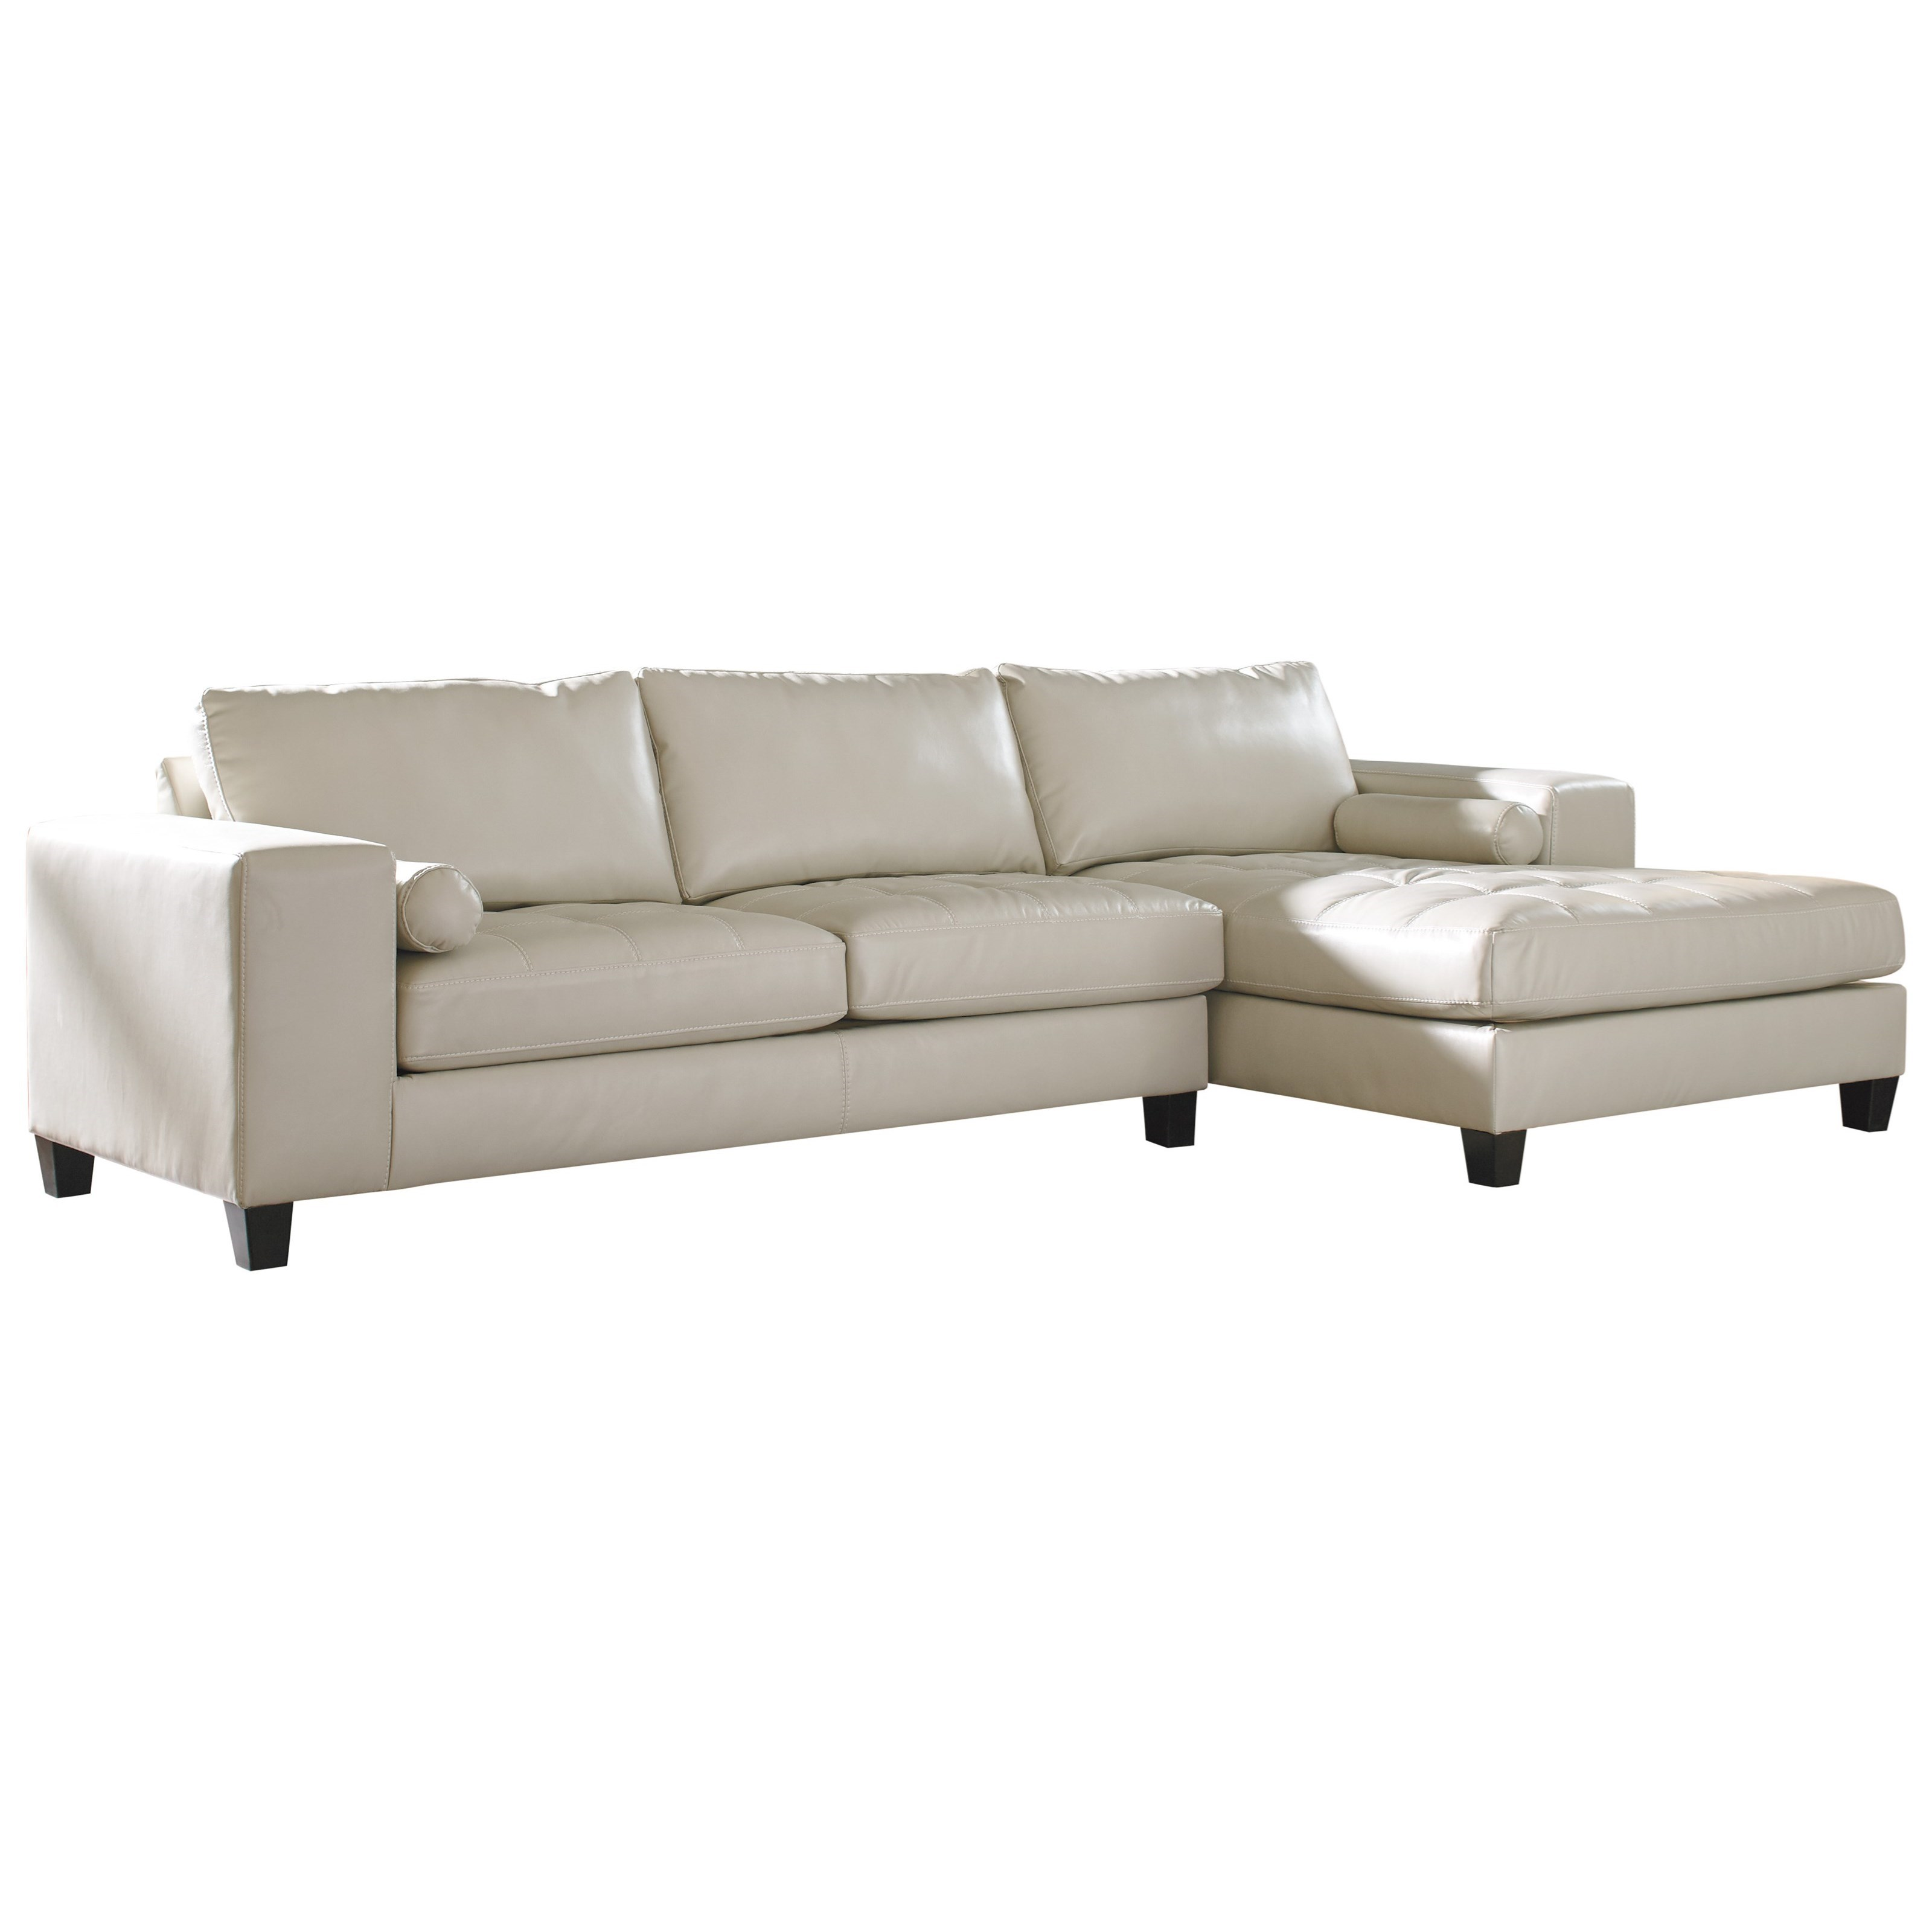 Signature Design by Ashley Nokomis Sectional with Right Chaise - Item Number: 8770266+17